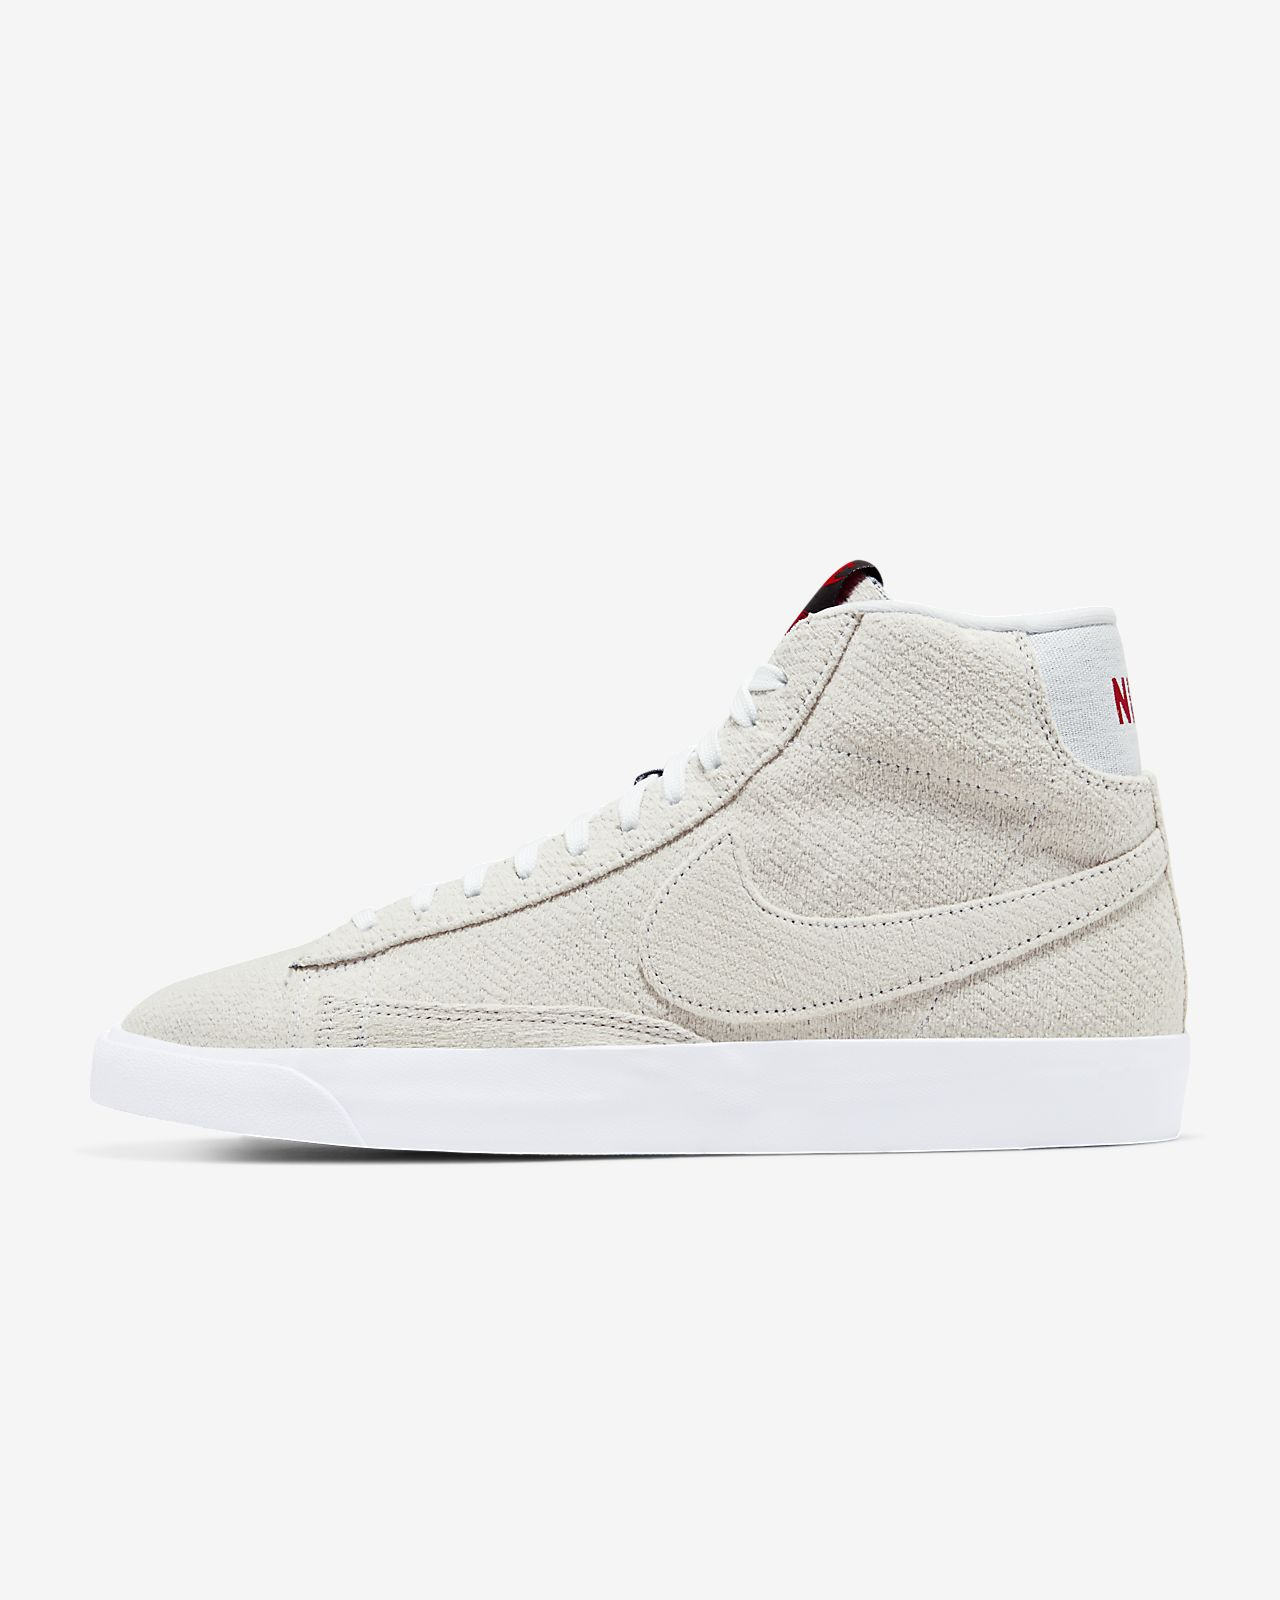 Nike x Stranger Things Blazer Mid 'Upside Down' Men's Shoe